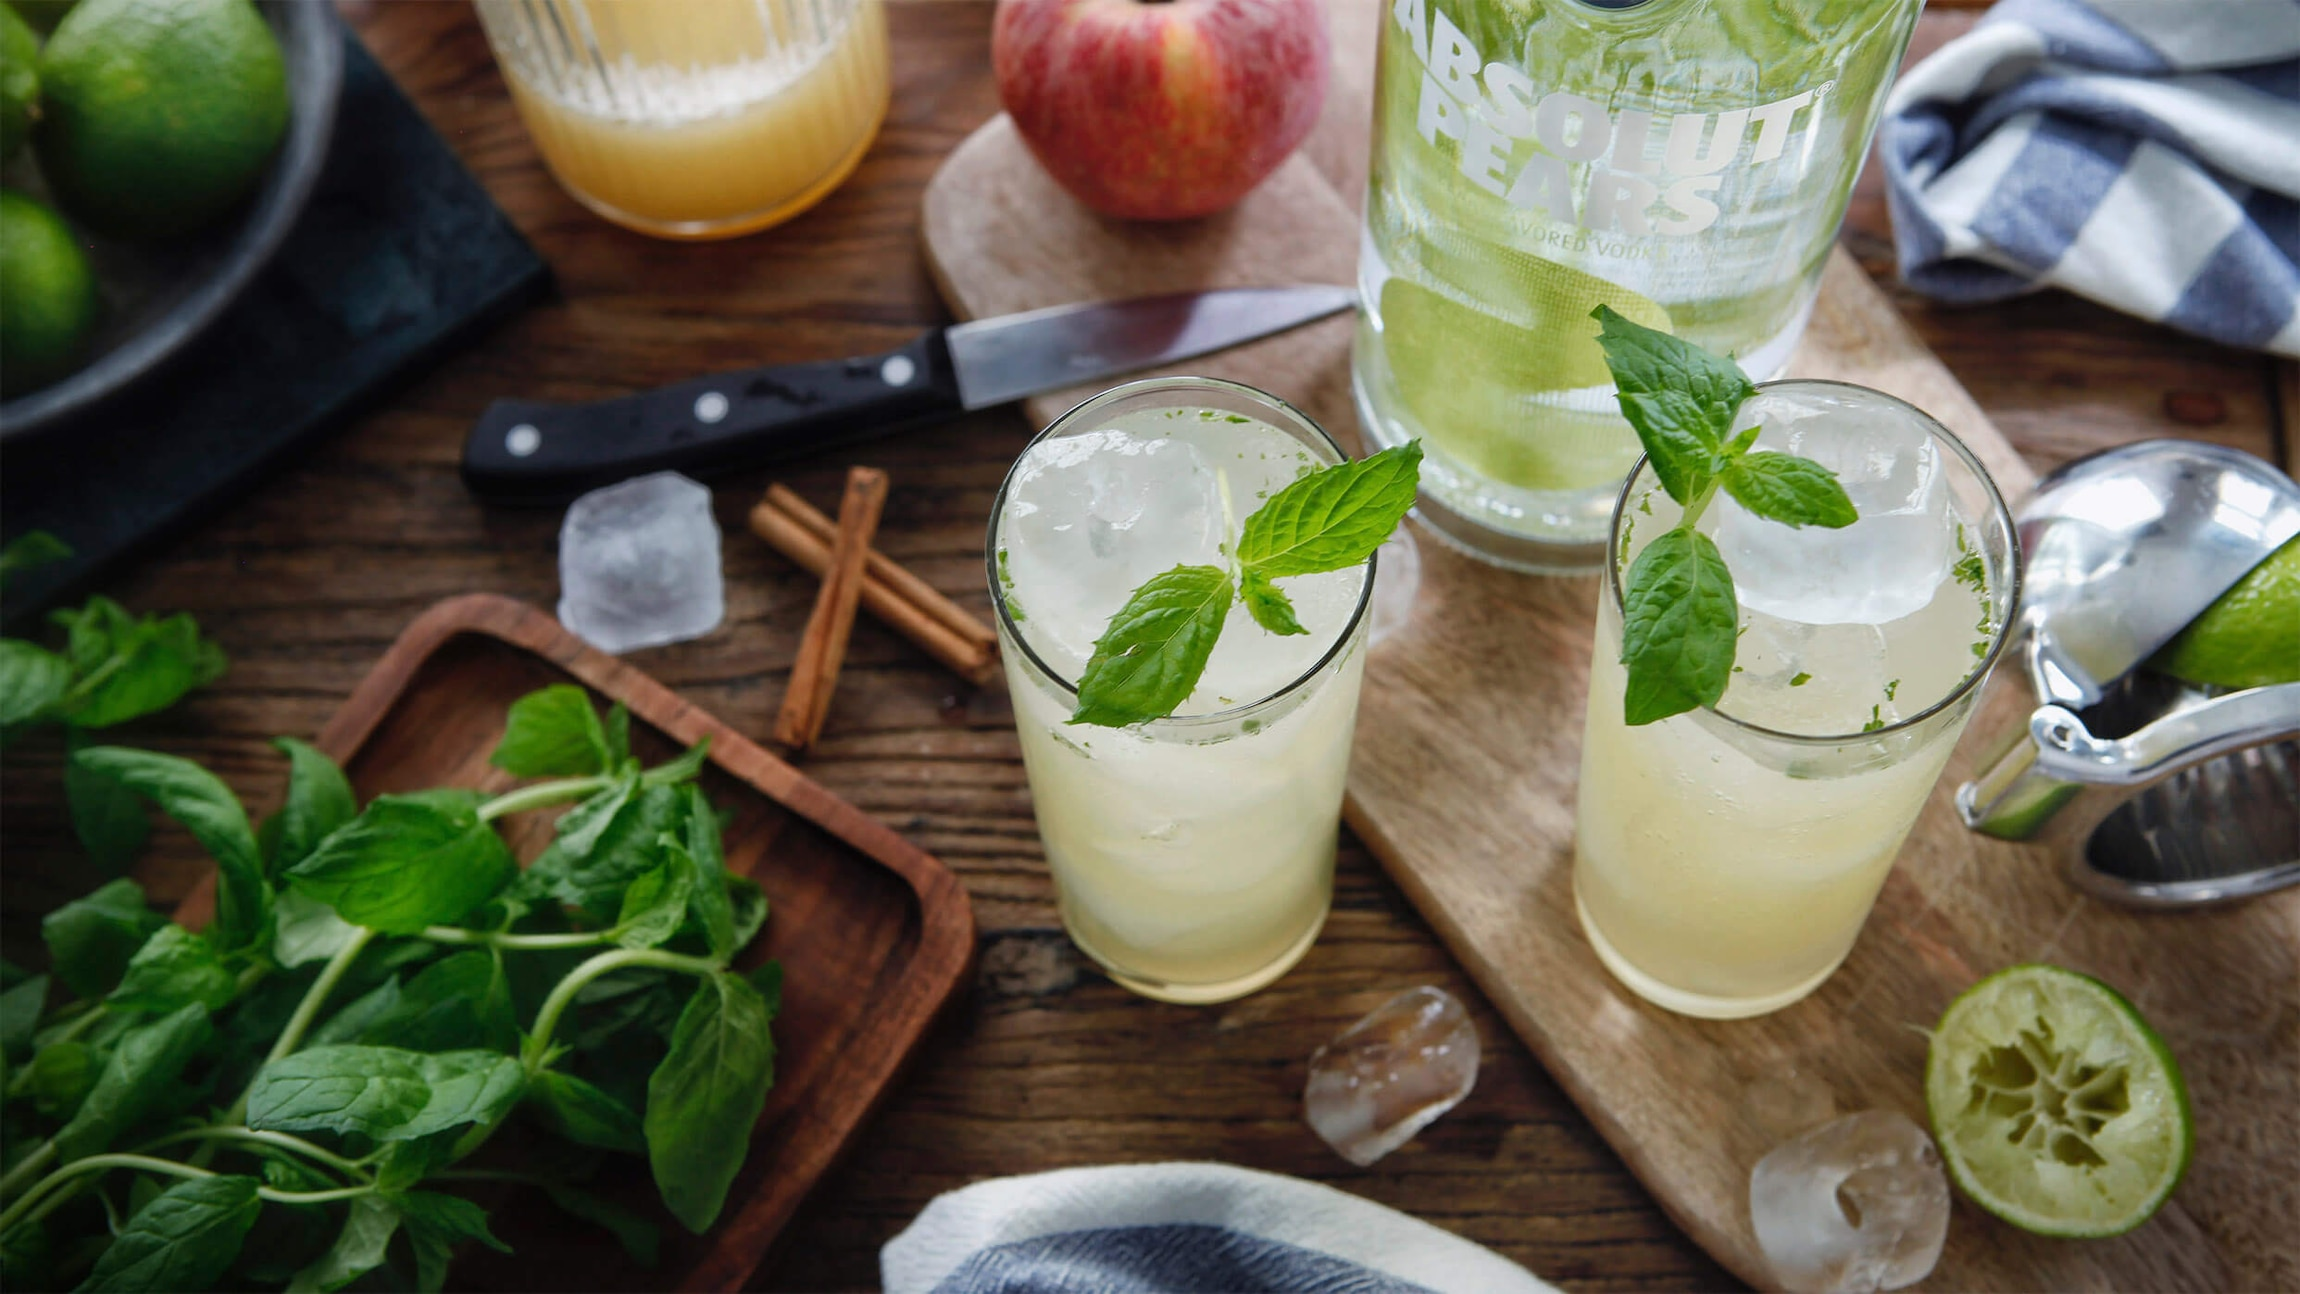 Impress your friends -  Learn how to make their favorite drinks!